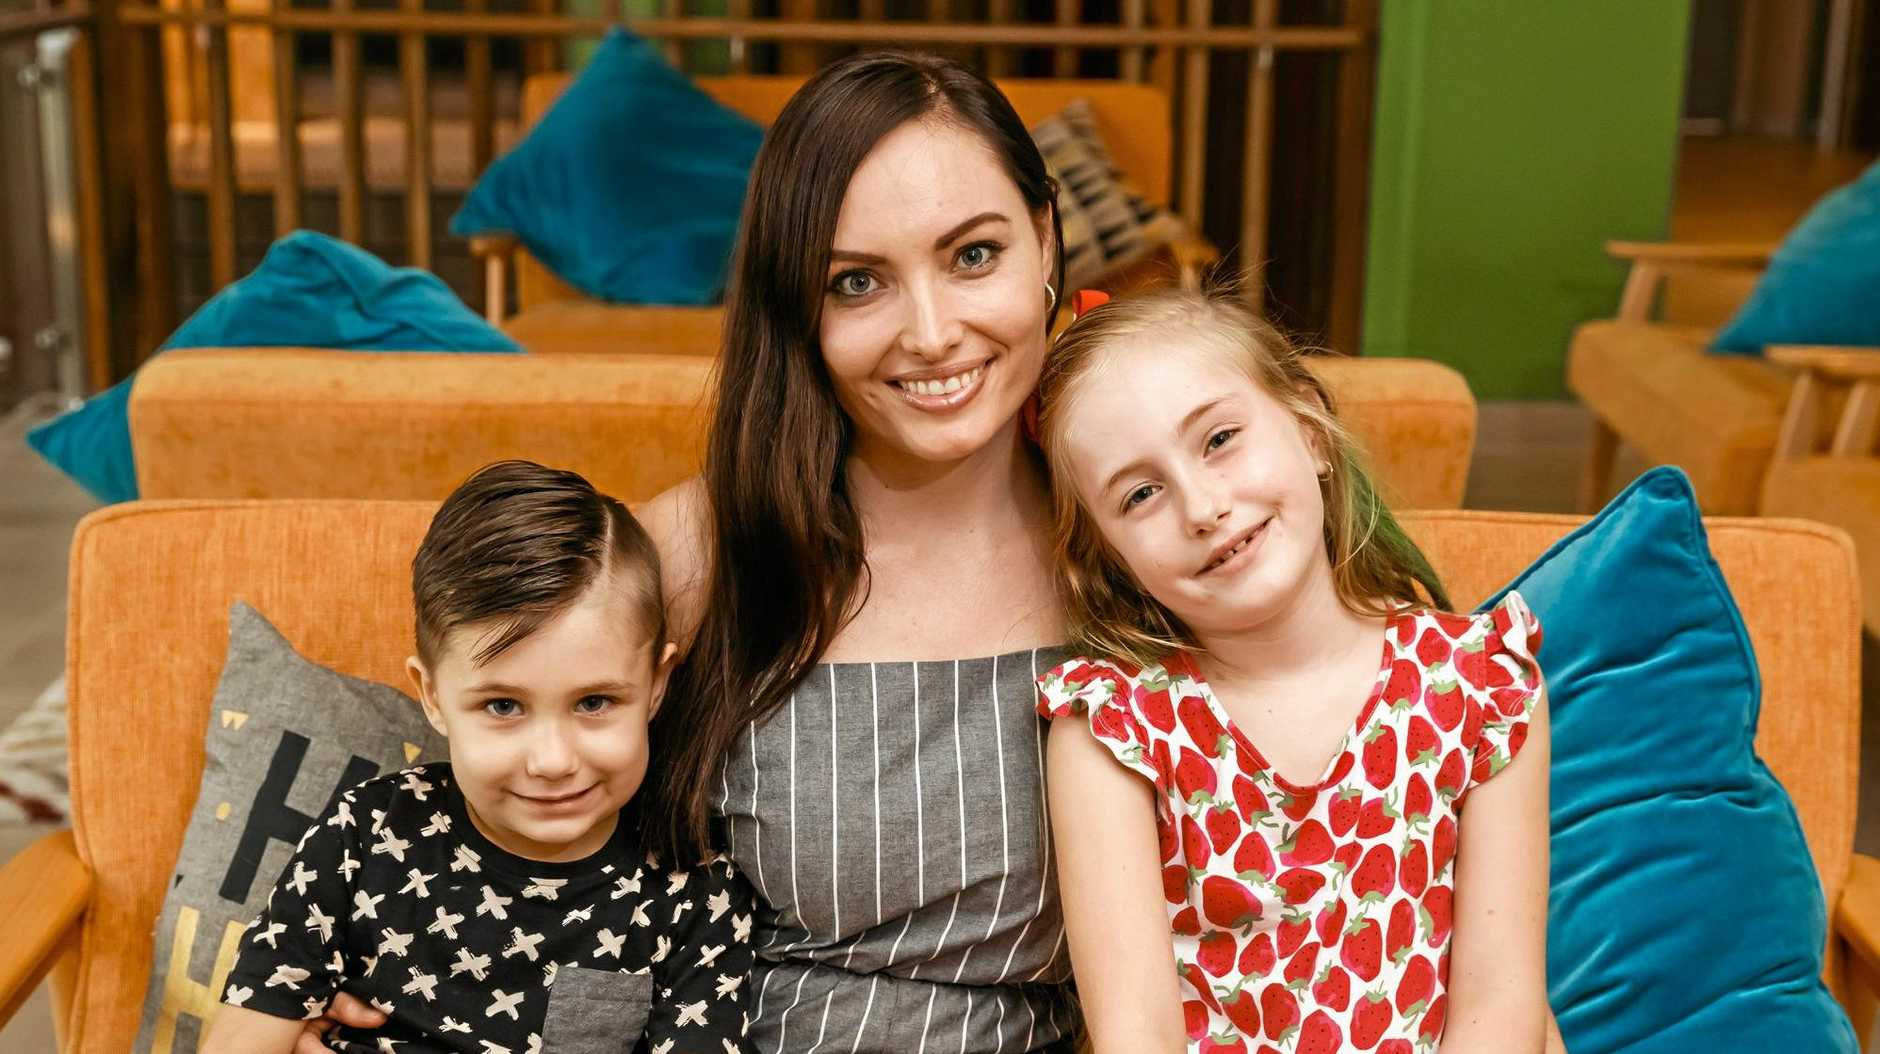 BRAVE BATTLE: Ronald McDonald House resident Pamela Pershouse at The Star Entertainment Group's charity buffet in Brisbane, along with her daughter Leah, 6, and son Tyler, 4, who was diagnosed with a rare cancer.